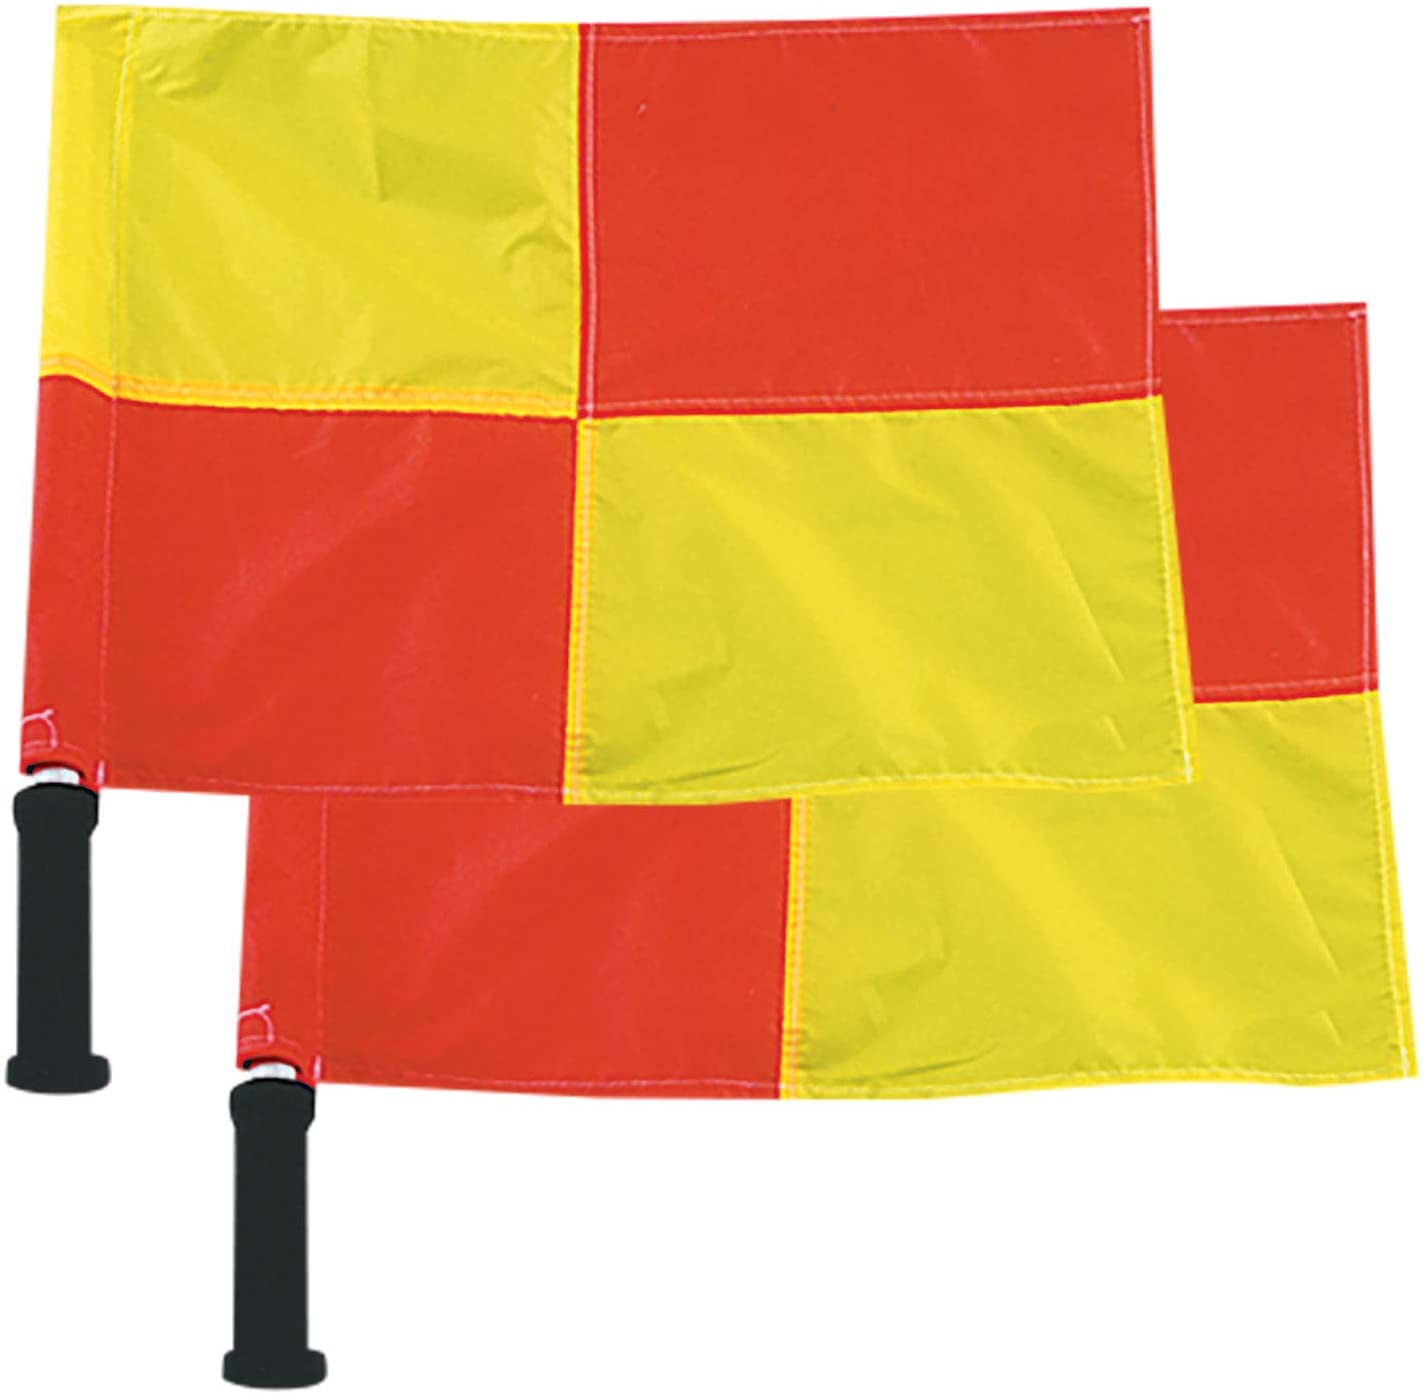 Champro Linesman Flags with Foam Grips(2)